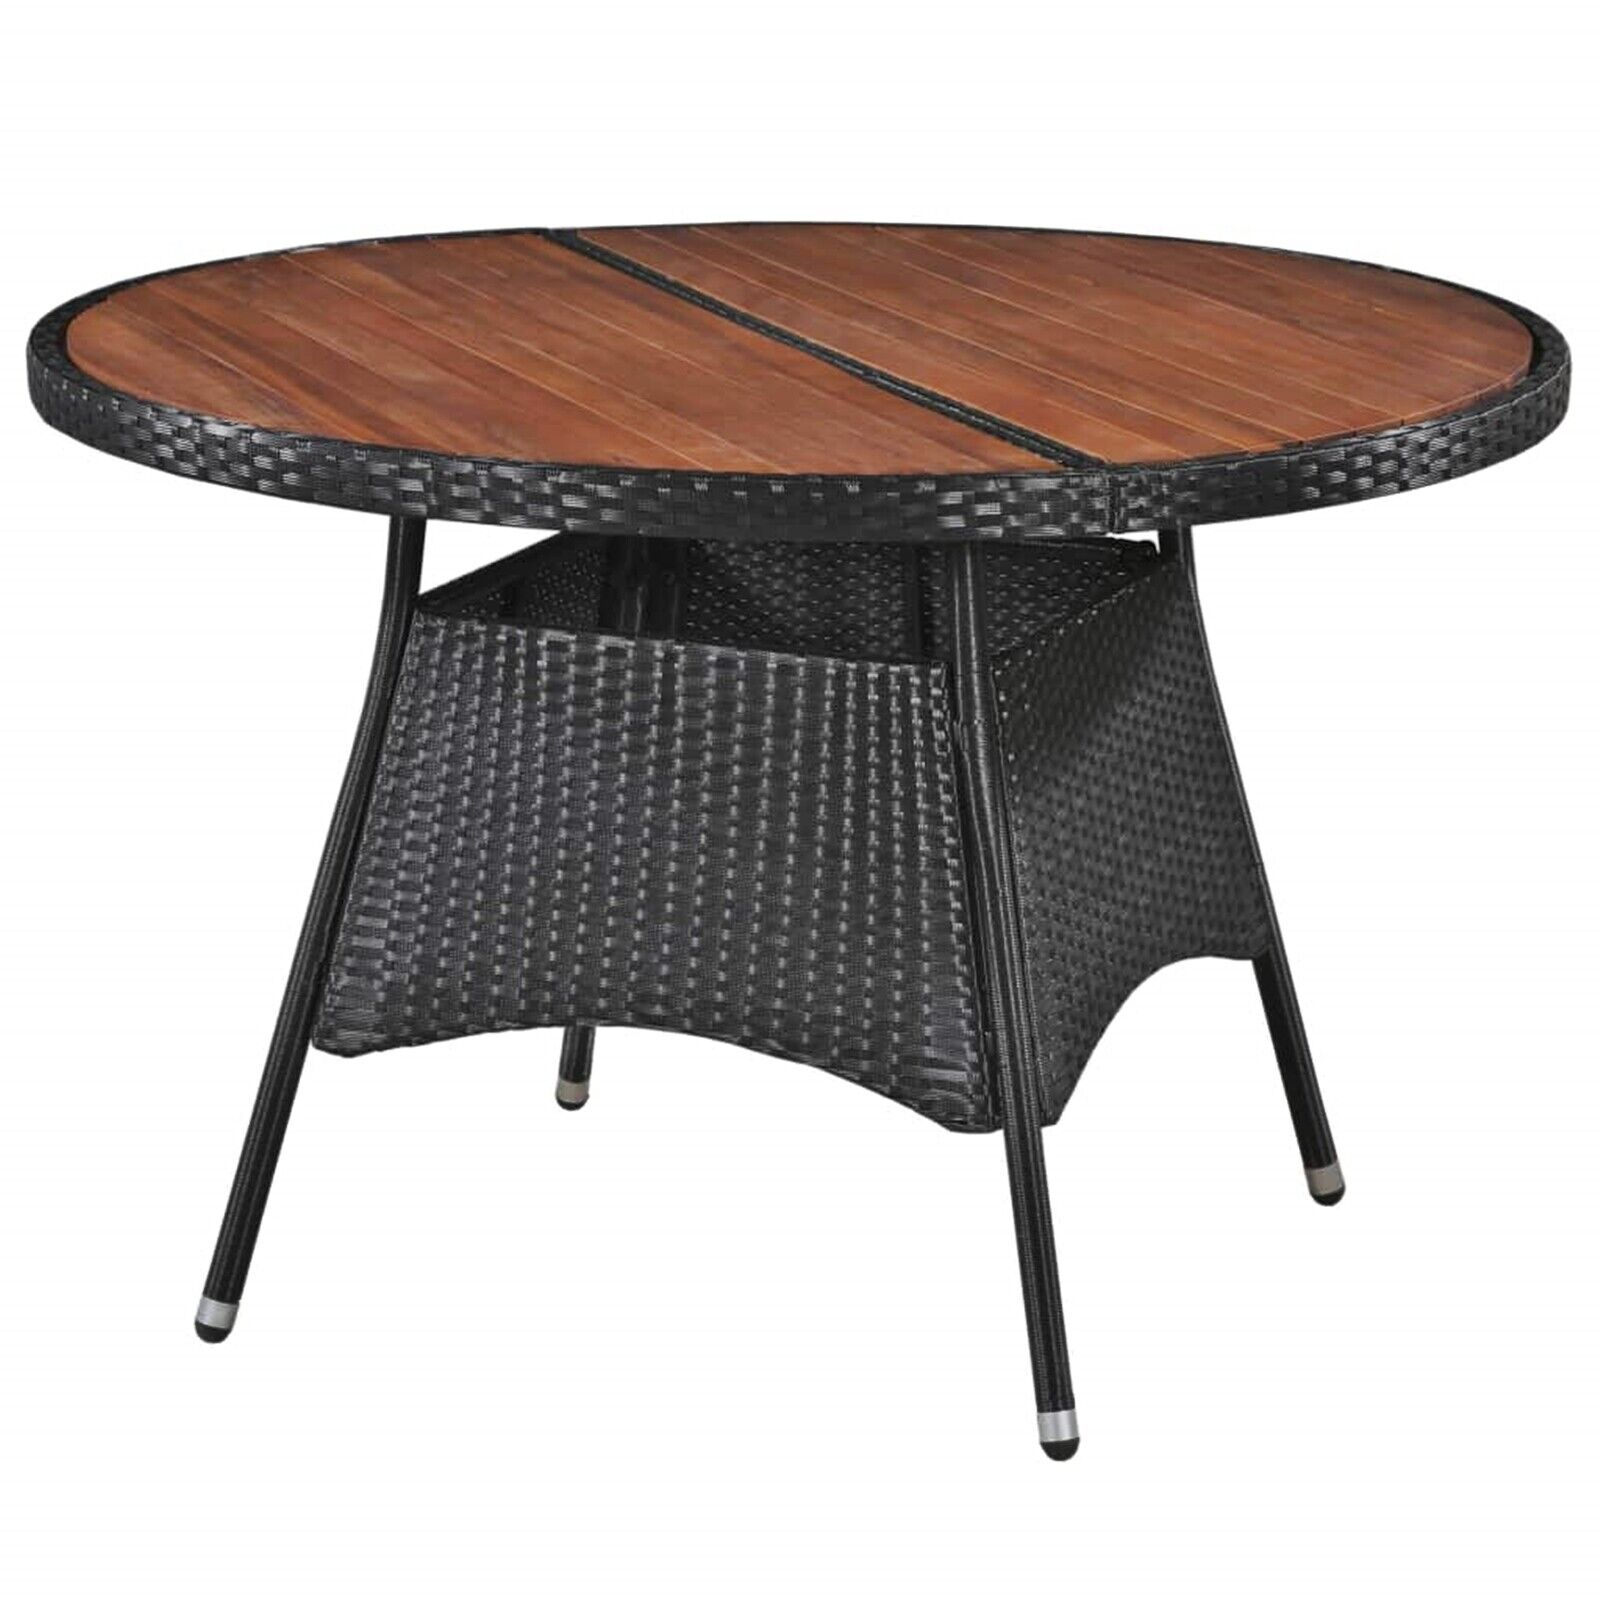 Picture of: Garden Dining Table Large Outdoor Lunch Coffee Patio Furniture Round Wooden Top Ebay